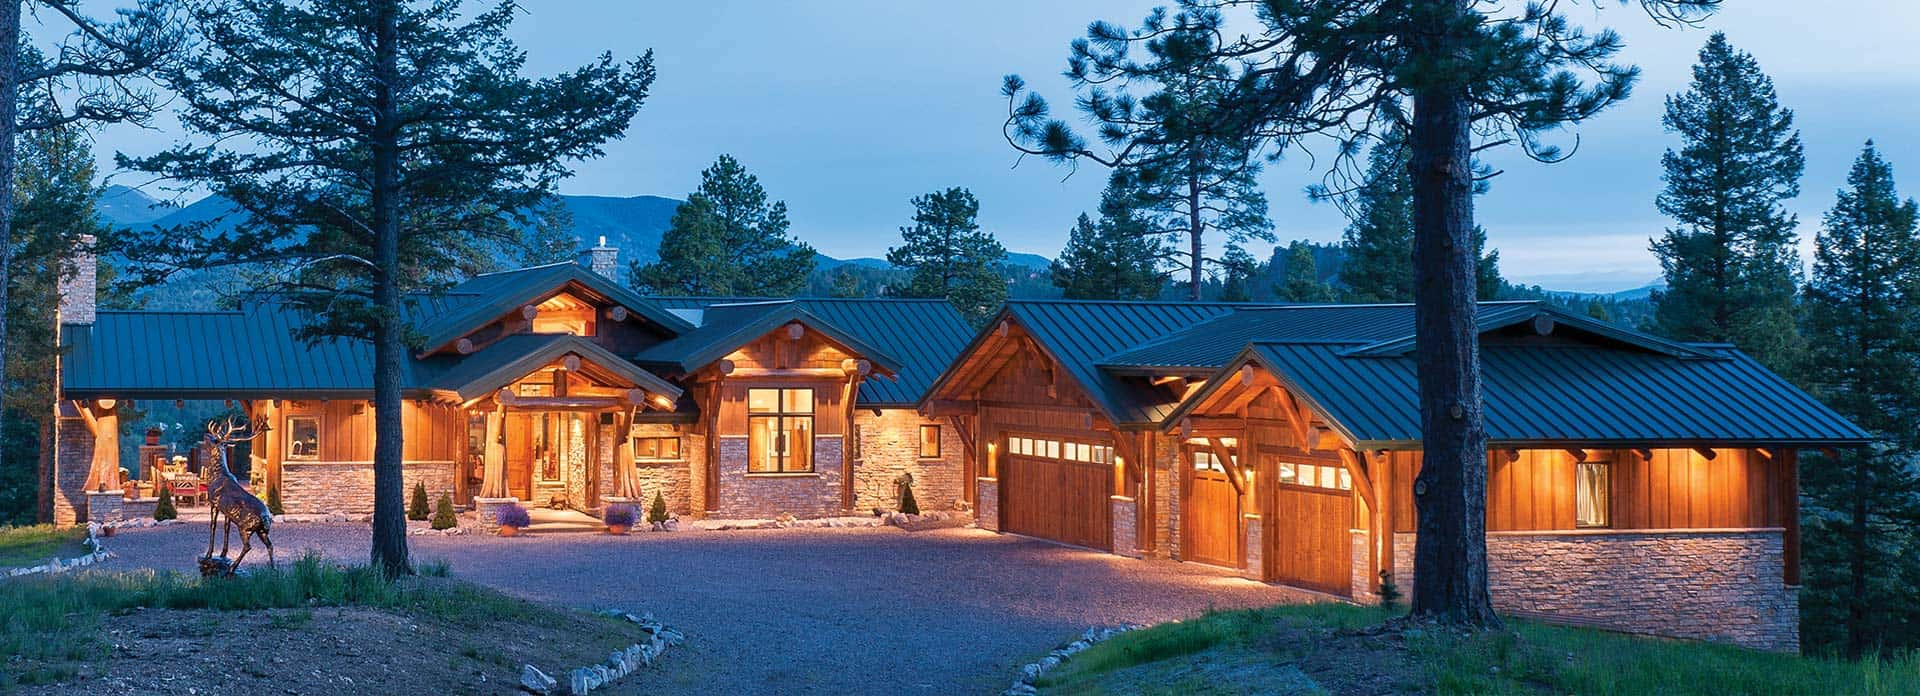 Post and Beam Homes   by PrecisionCraft Log Post and Beam home